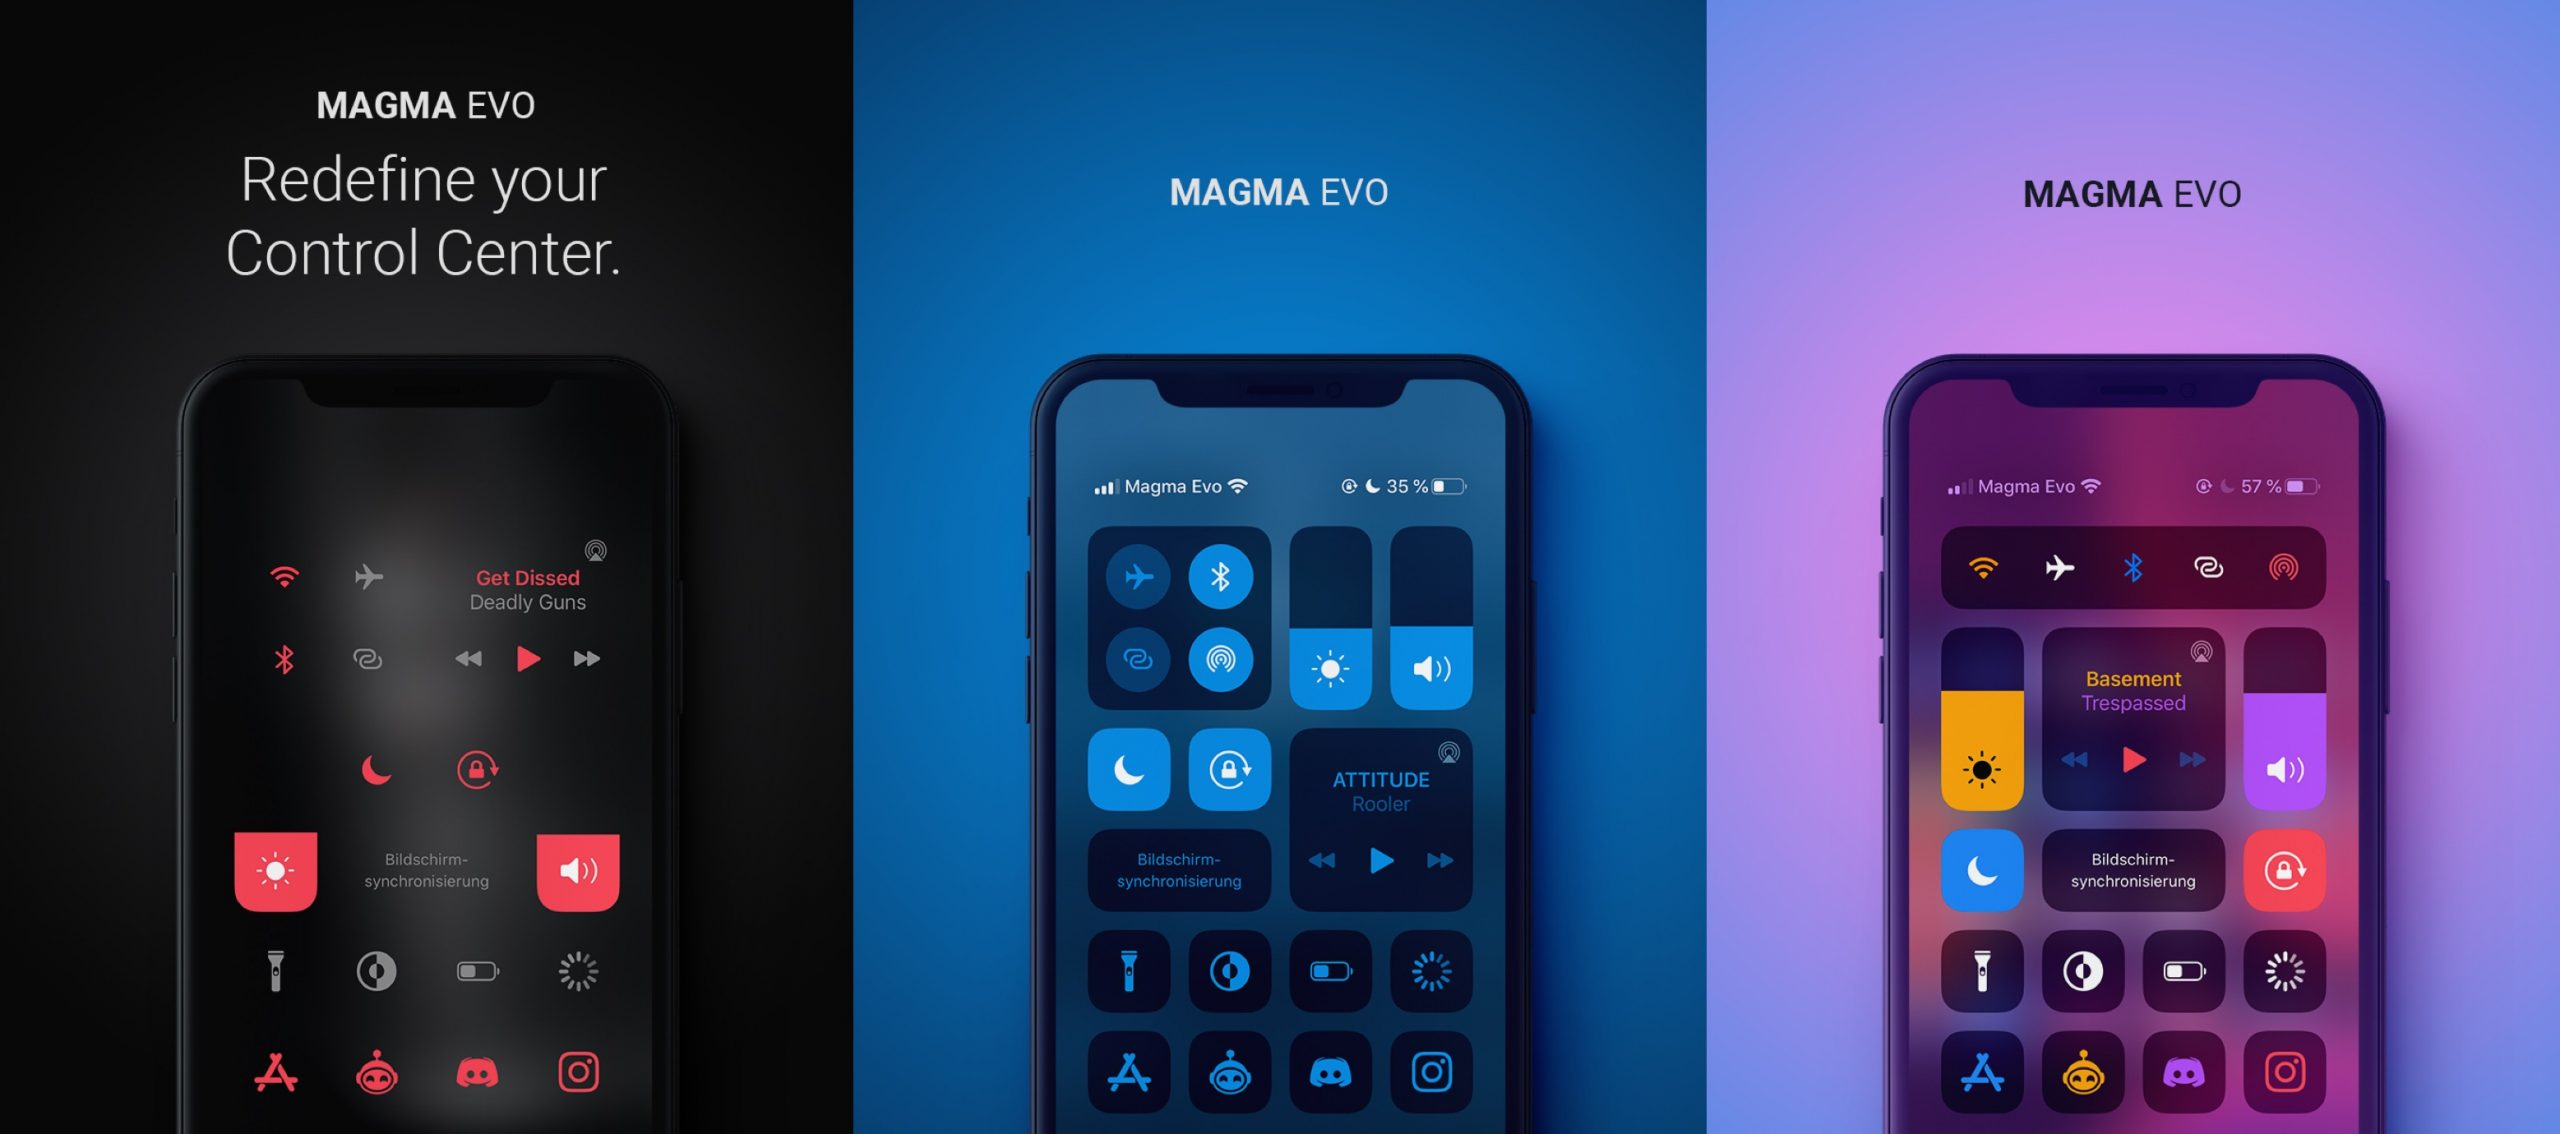 O Magma Evo permite personalizar a interface do Control Center 1